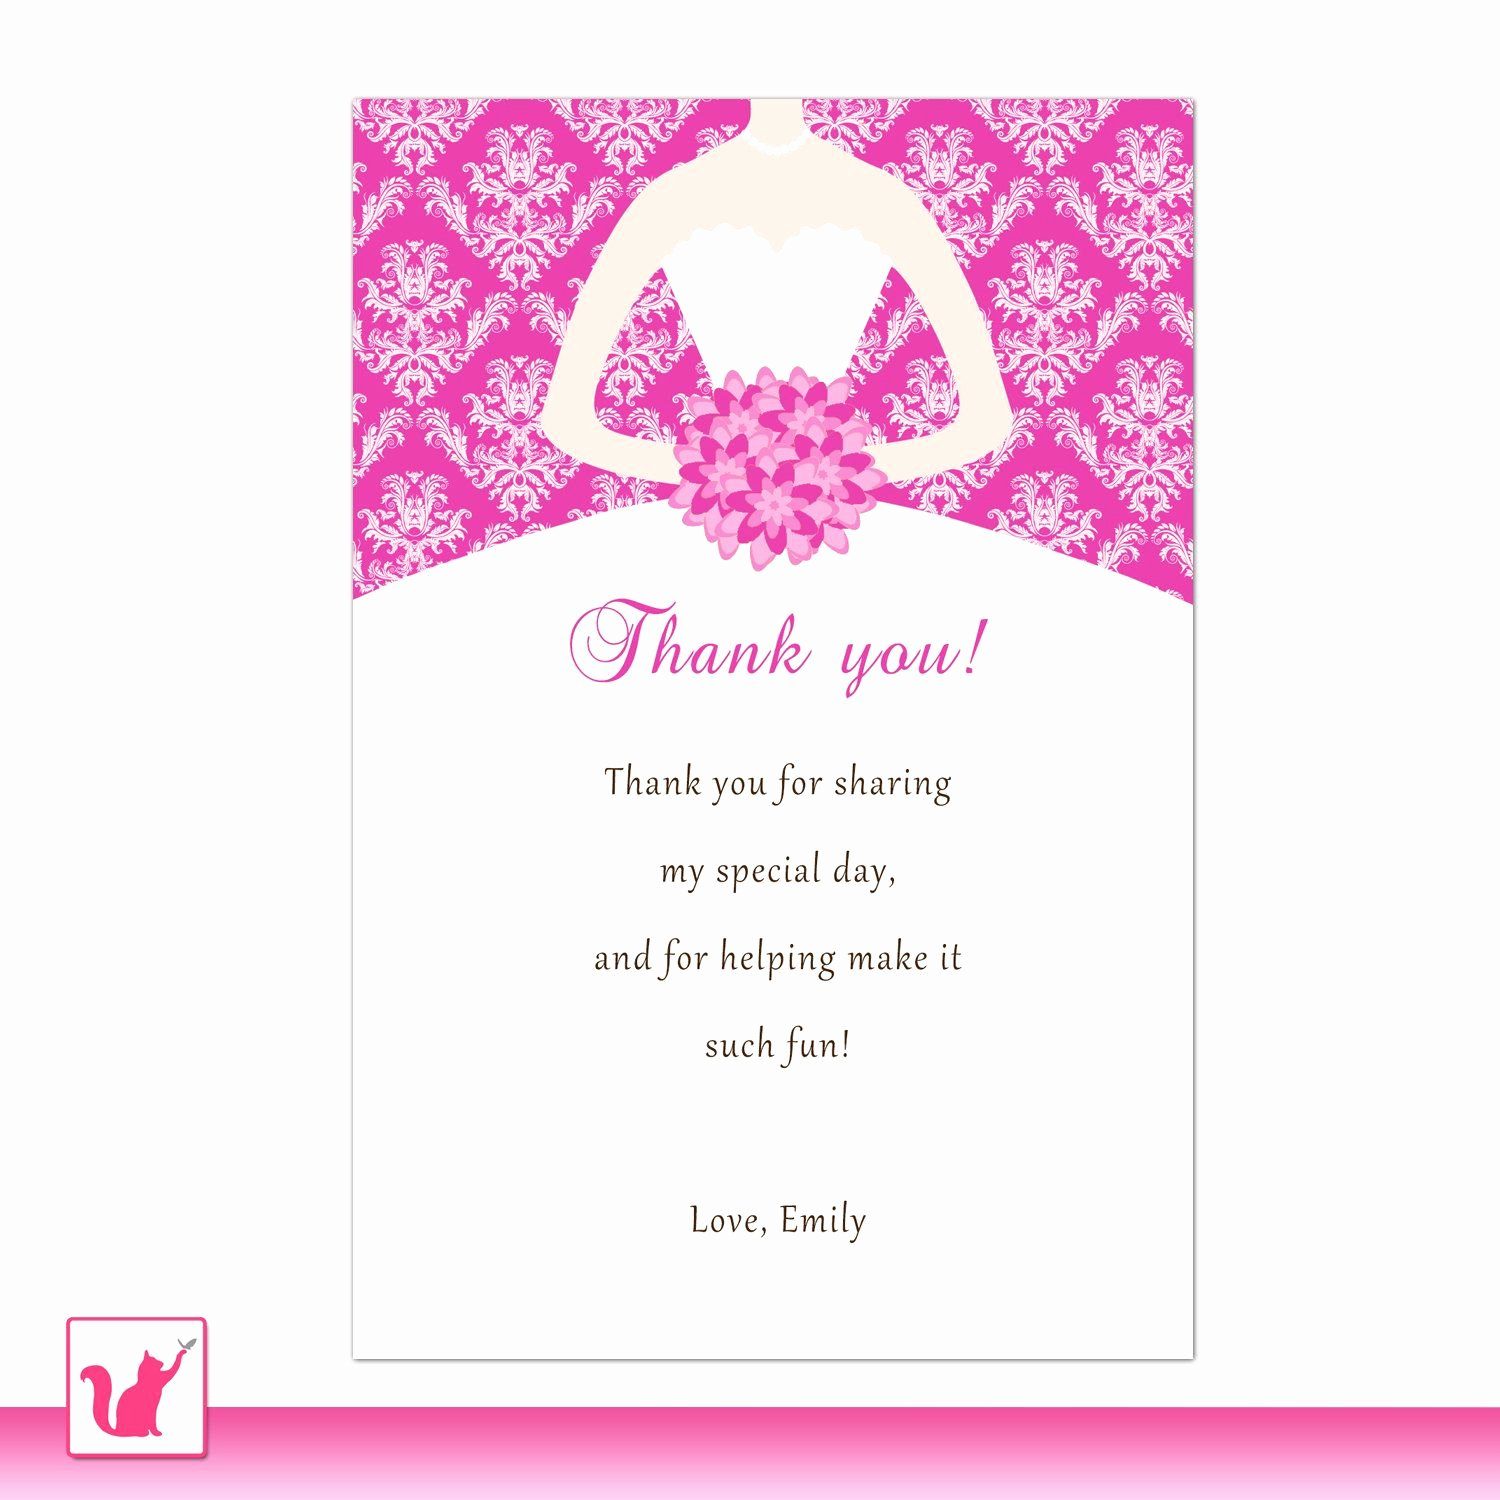 Bridal Shower Thank You Examples Lovely Bride Dress Bridal Shower Thank You Card Hot Pink Thank